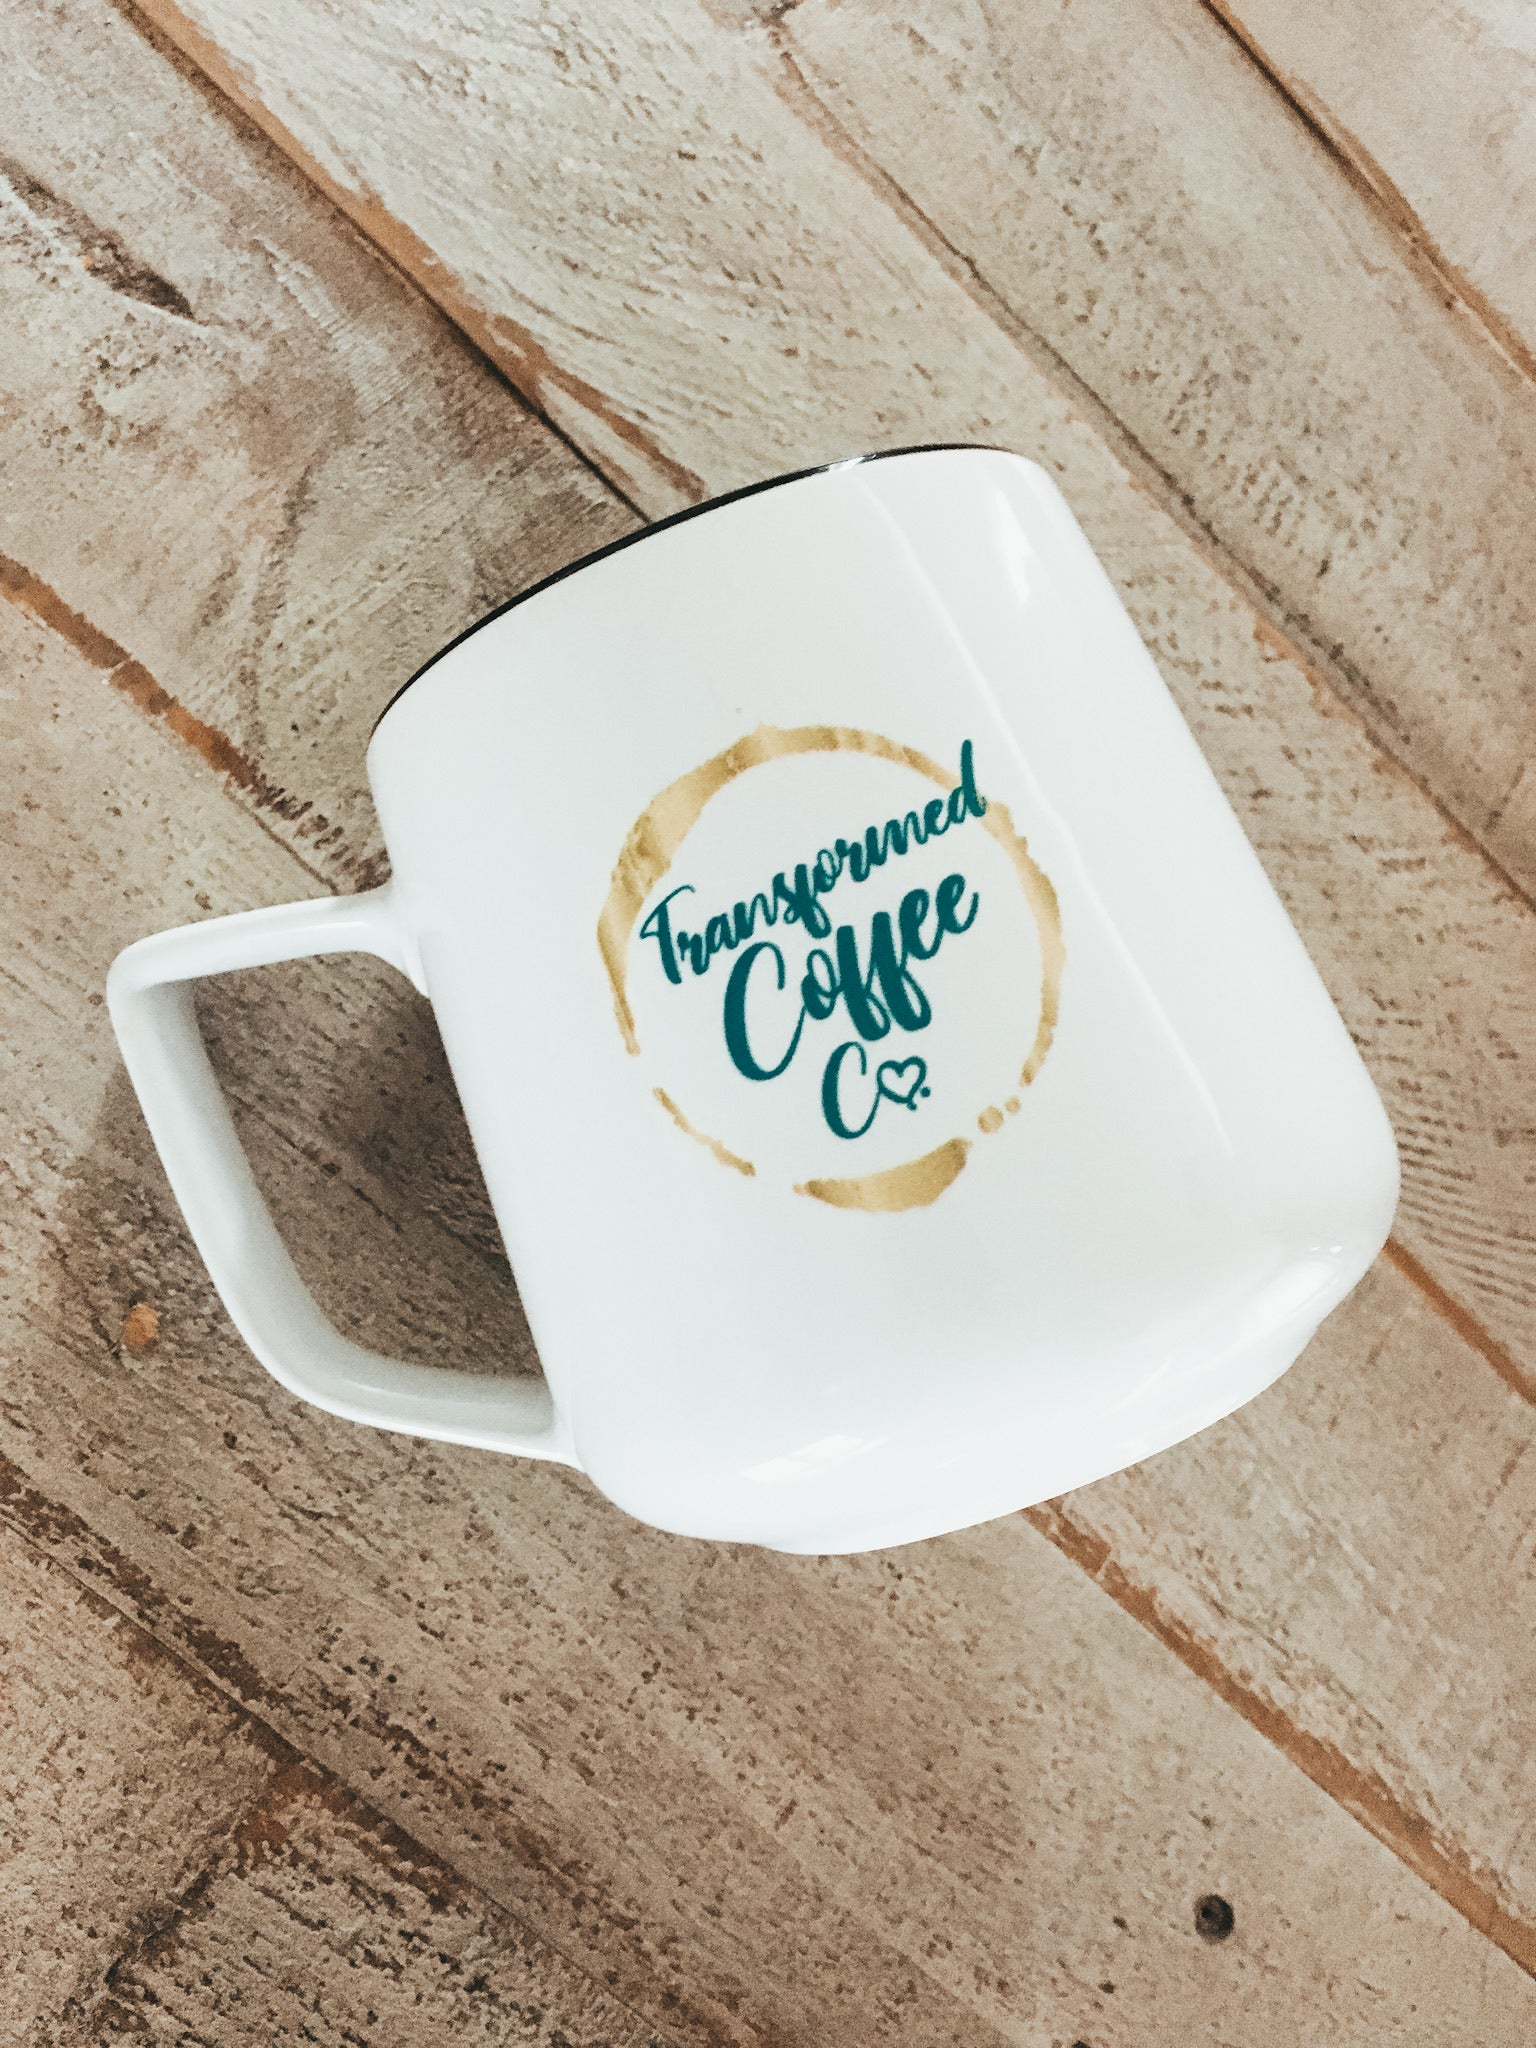 Transformed Coffee Co. - Mug